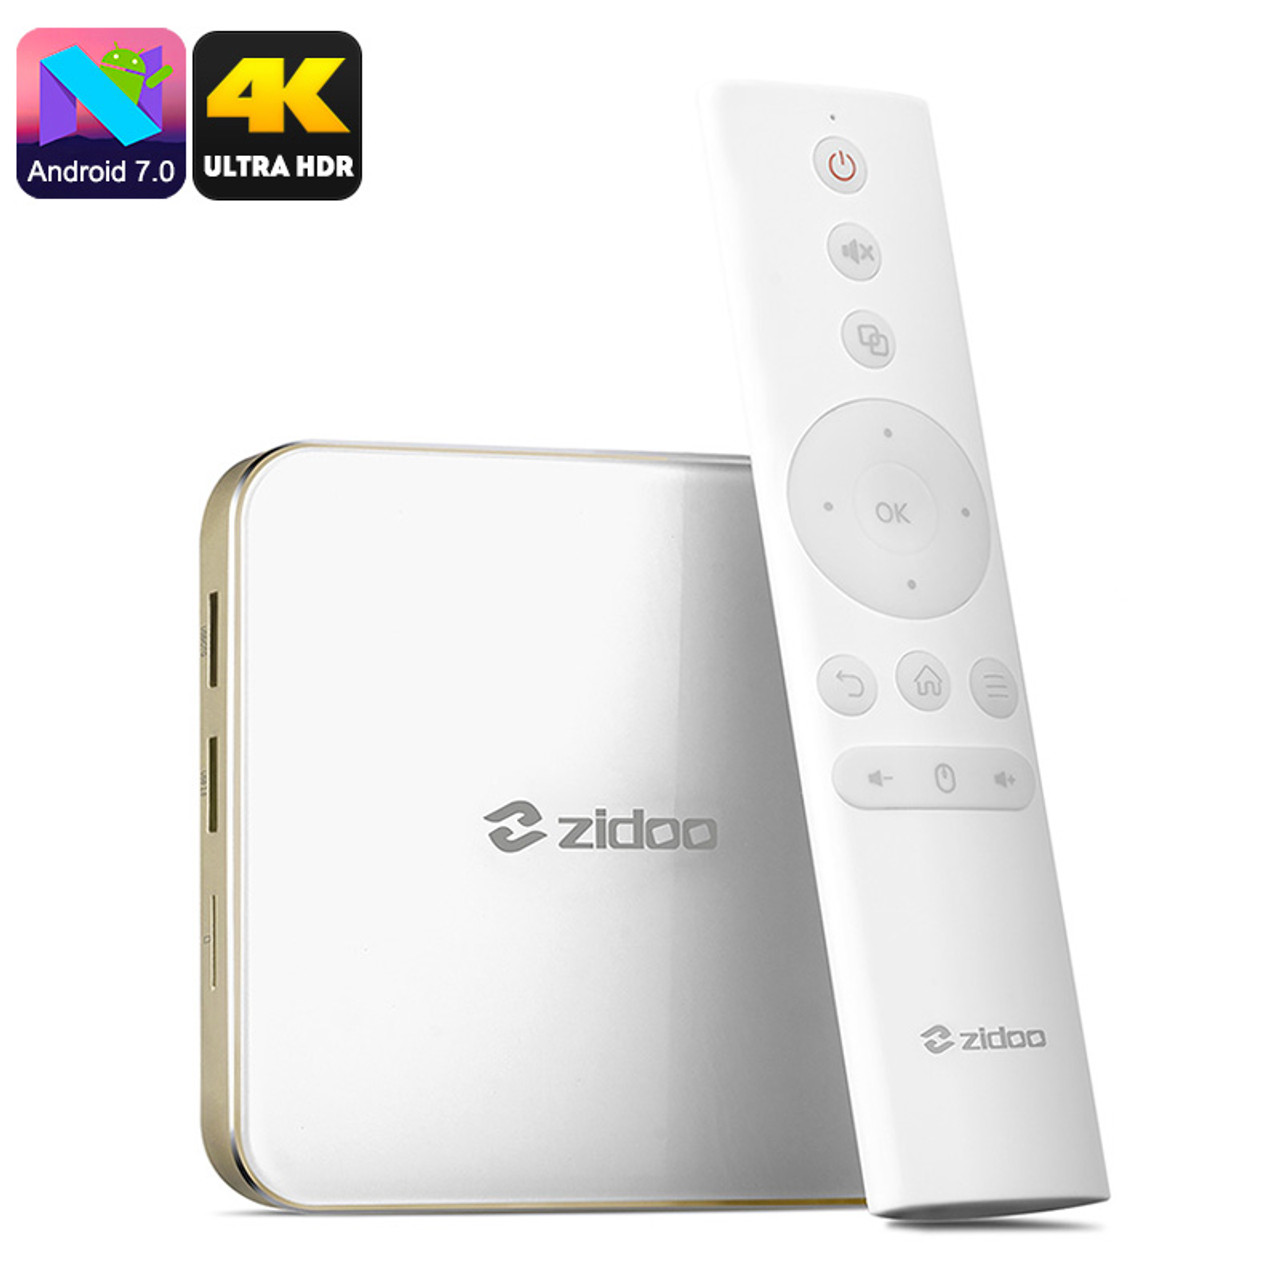 Zidoo H6 Pro Android TV Box - Android 7.0 OS, 2GB DDR4 RAM, Quad Core CPU,  4K, HDR, 10Bit Color - ZoneMerchandise